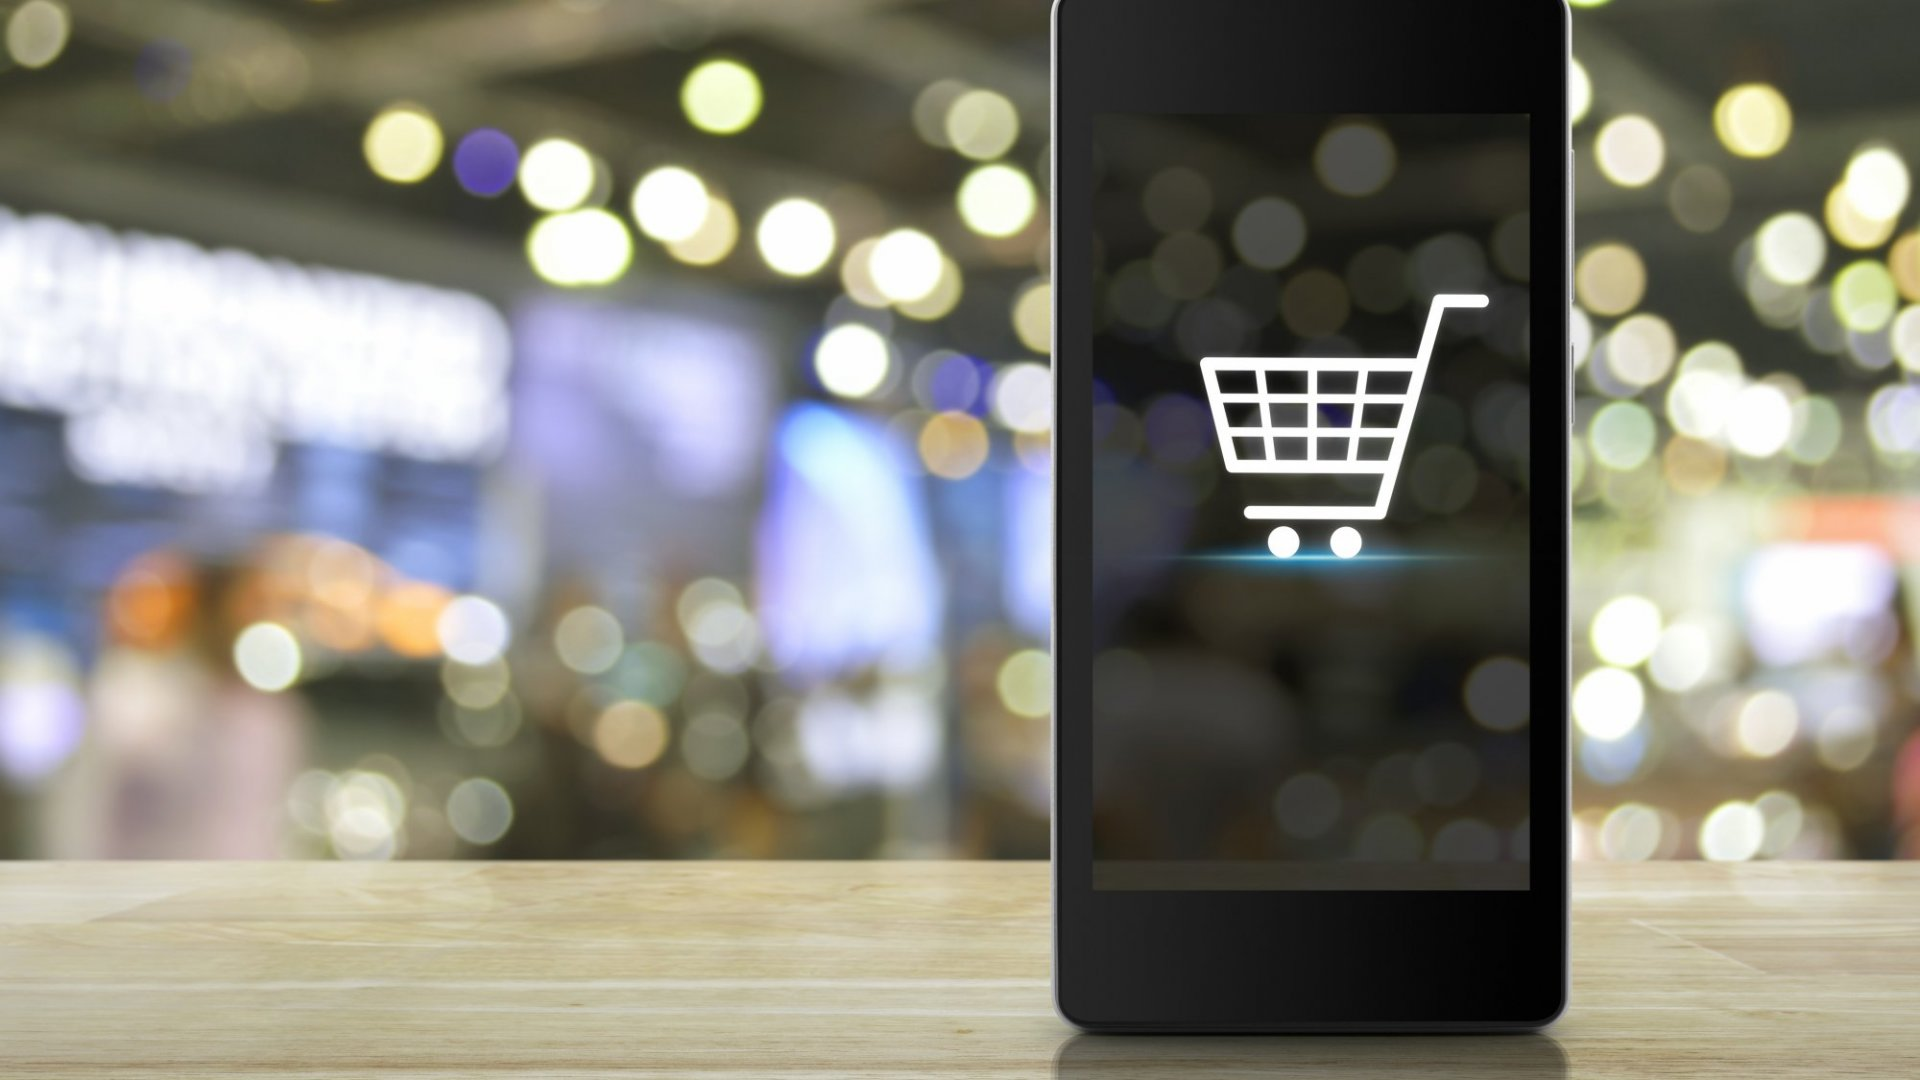 How Magnet Mount is Applying Innovative Brand Building to E-Commerce